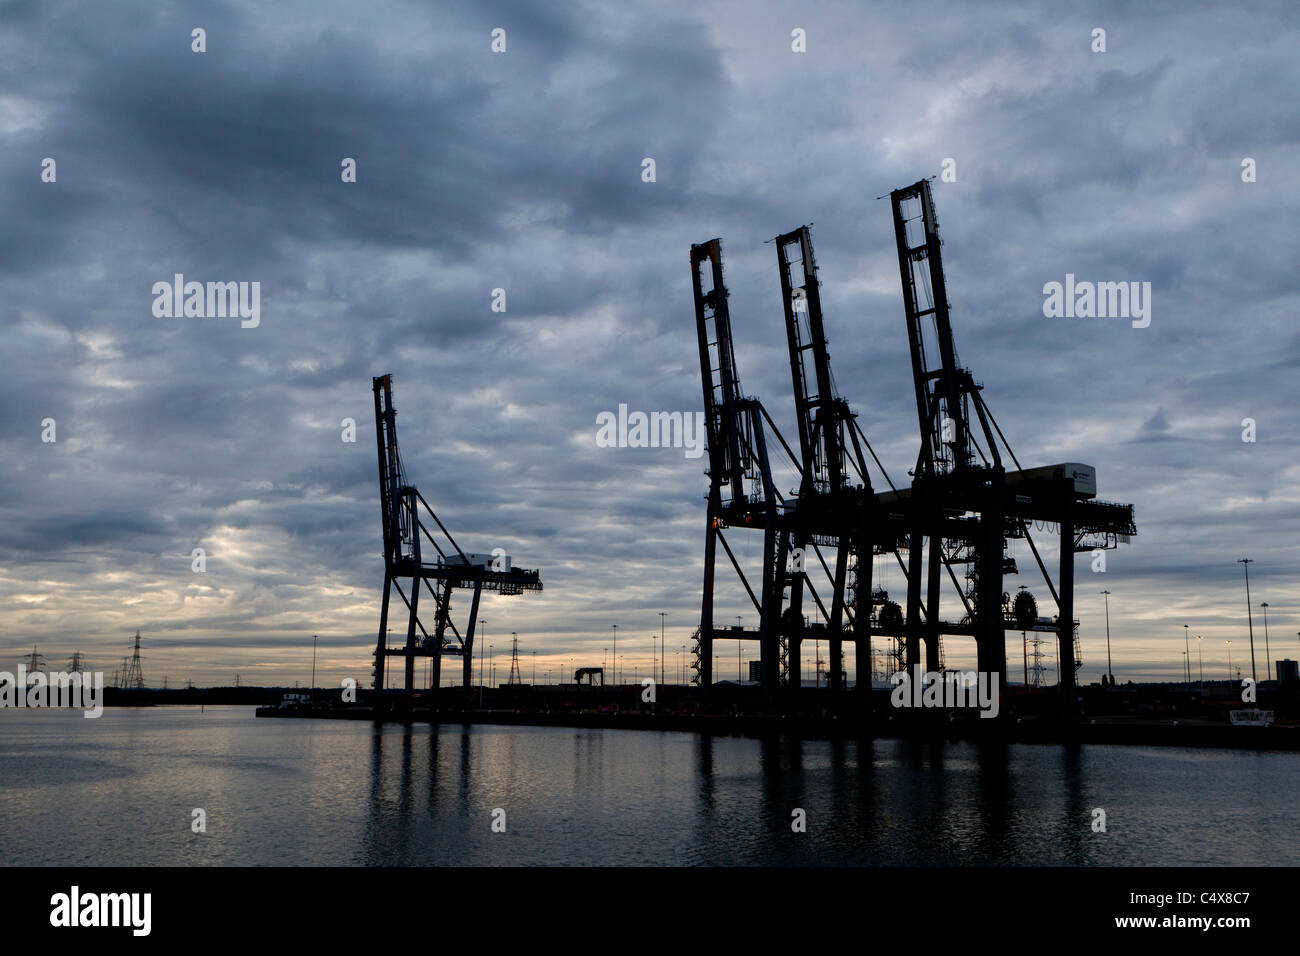 Container cranes stand idle at sunset in Southampton docks. - Stock Image